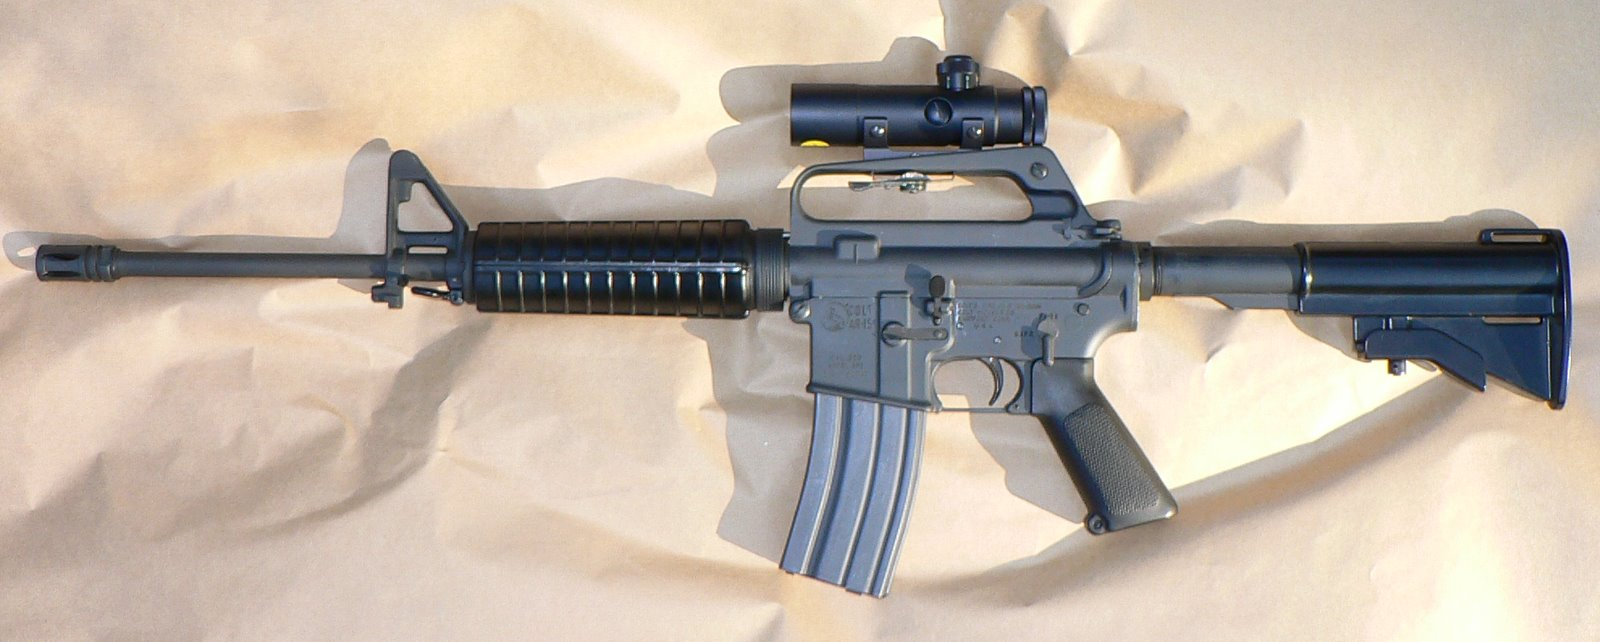 Assault weapon - Wikipedia